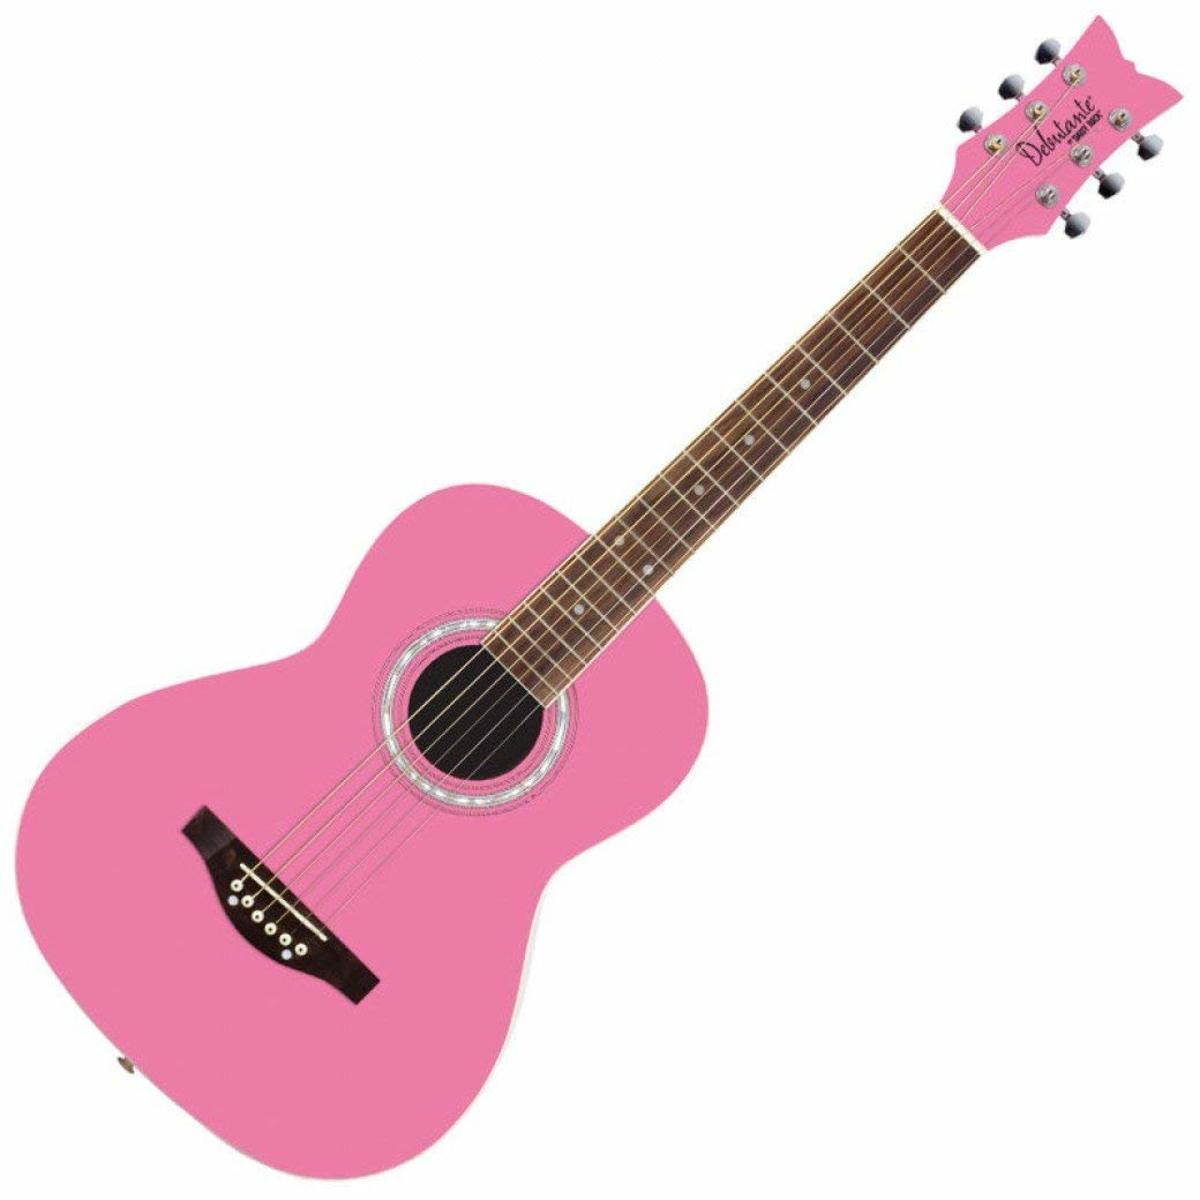 Best Beginner Guitars for Girls